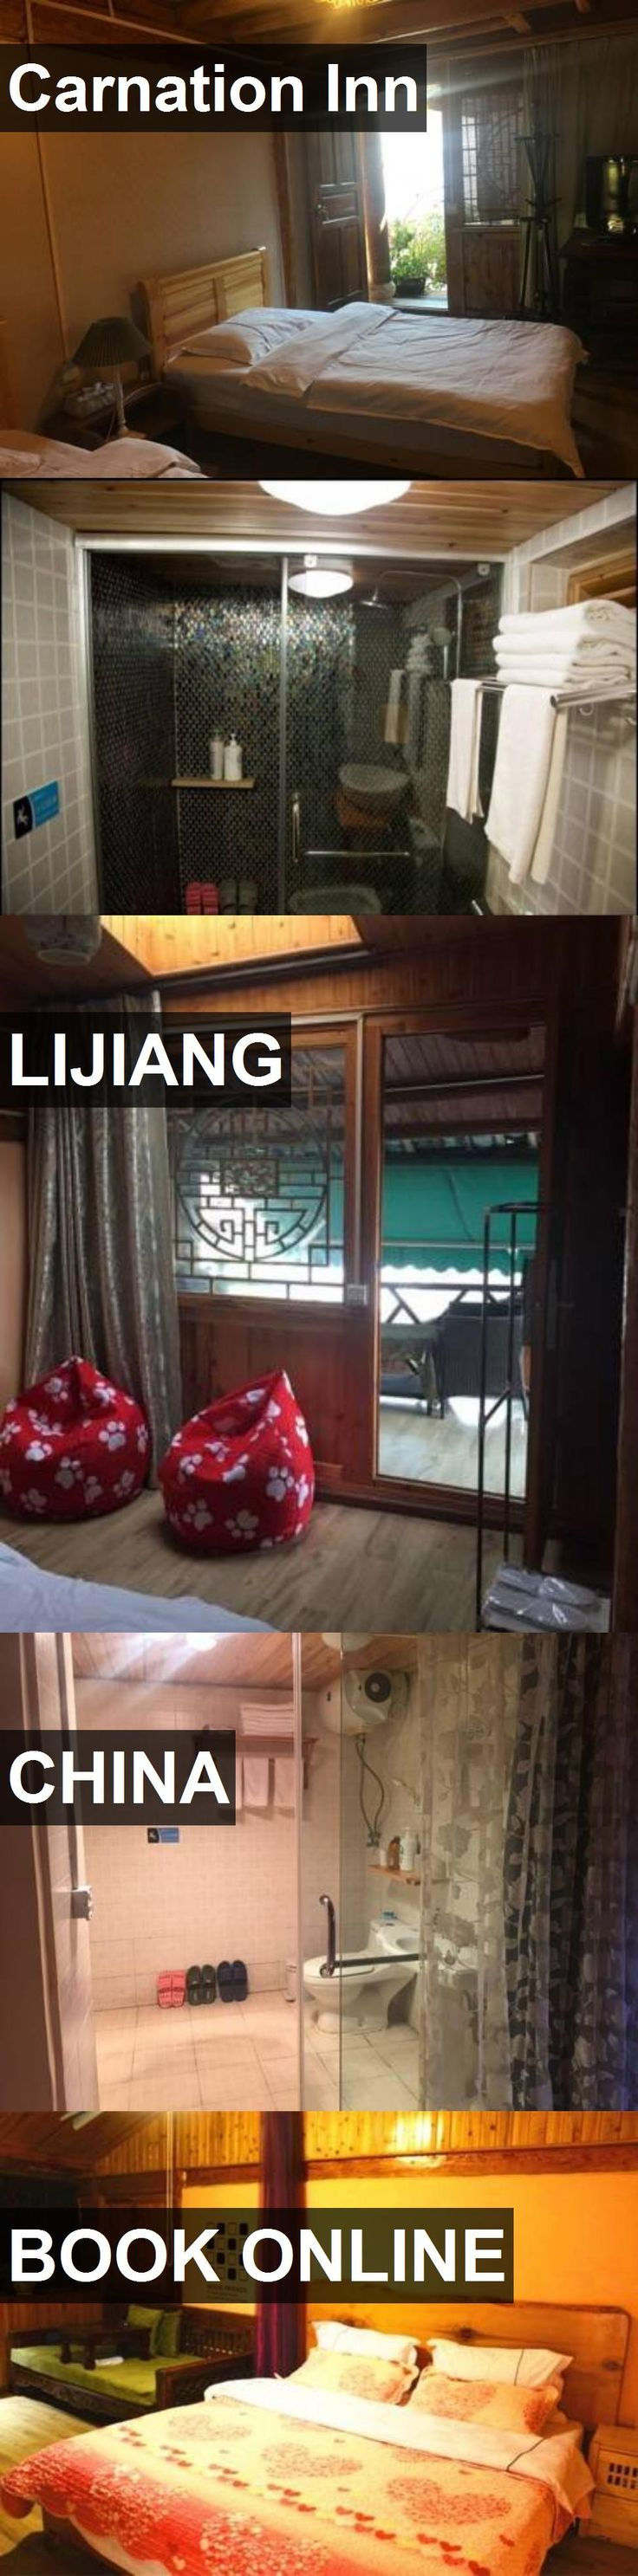 Hotel Carnation Inn in Lijiang, China. For more information, photos, reviews and best prices please follow the link. #China #Lijiang #CarnationInn #hotel #travel #vacation